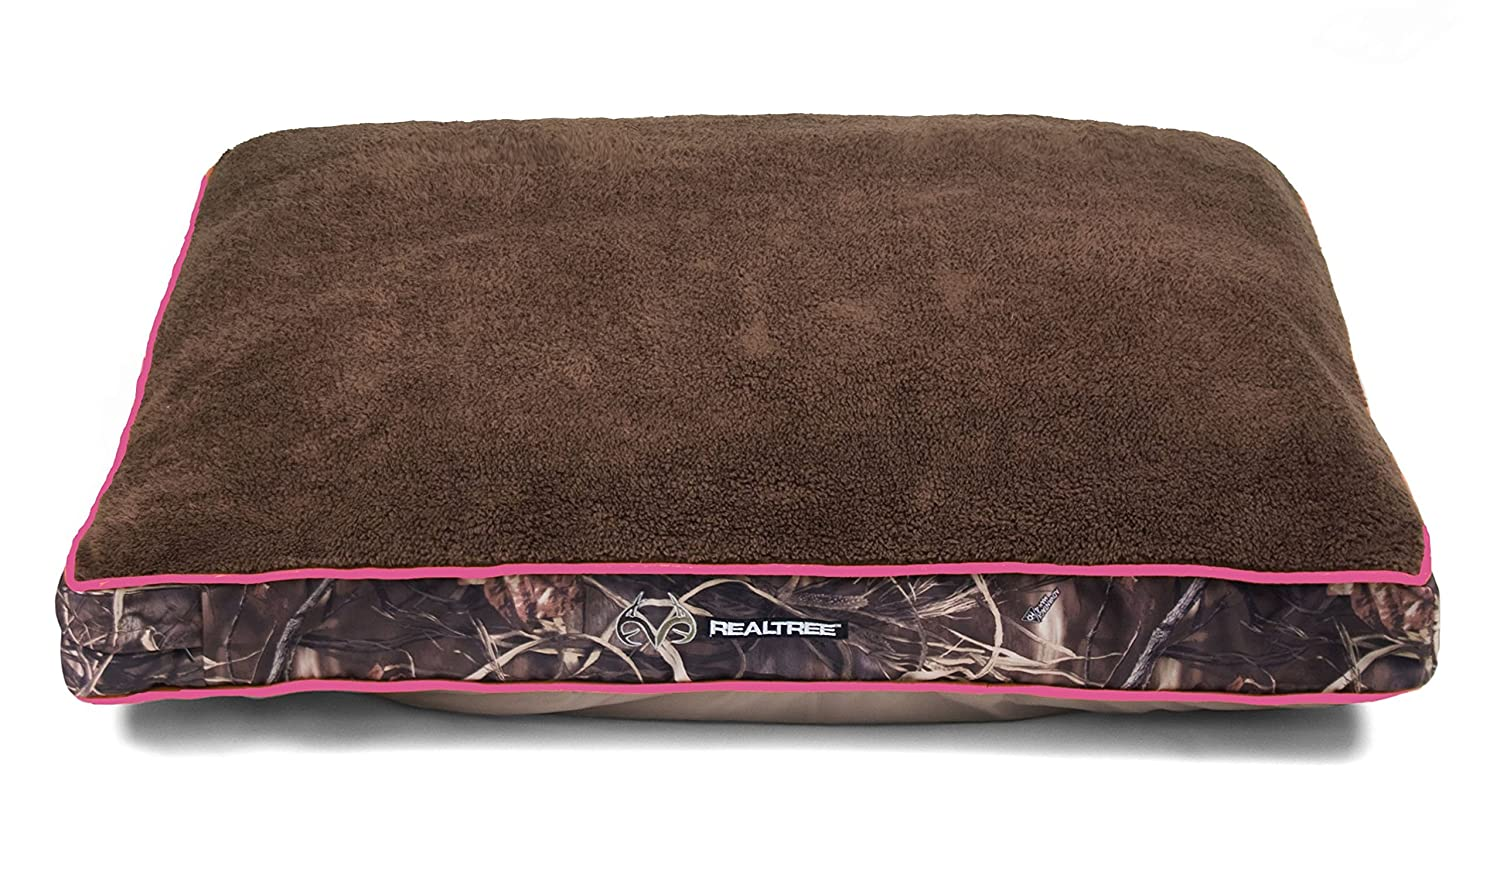 Dallas WG3040-930.2 Realtree Gusseted Pet Bed, Camo with Pink Piping, 40  x 30